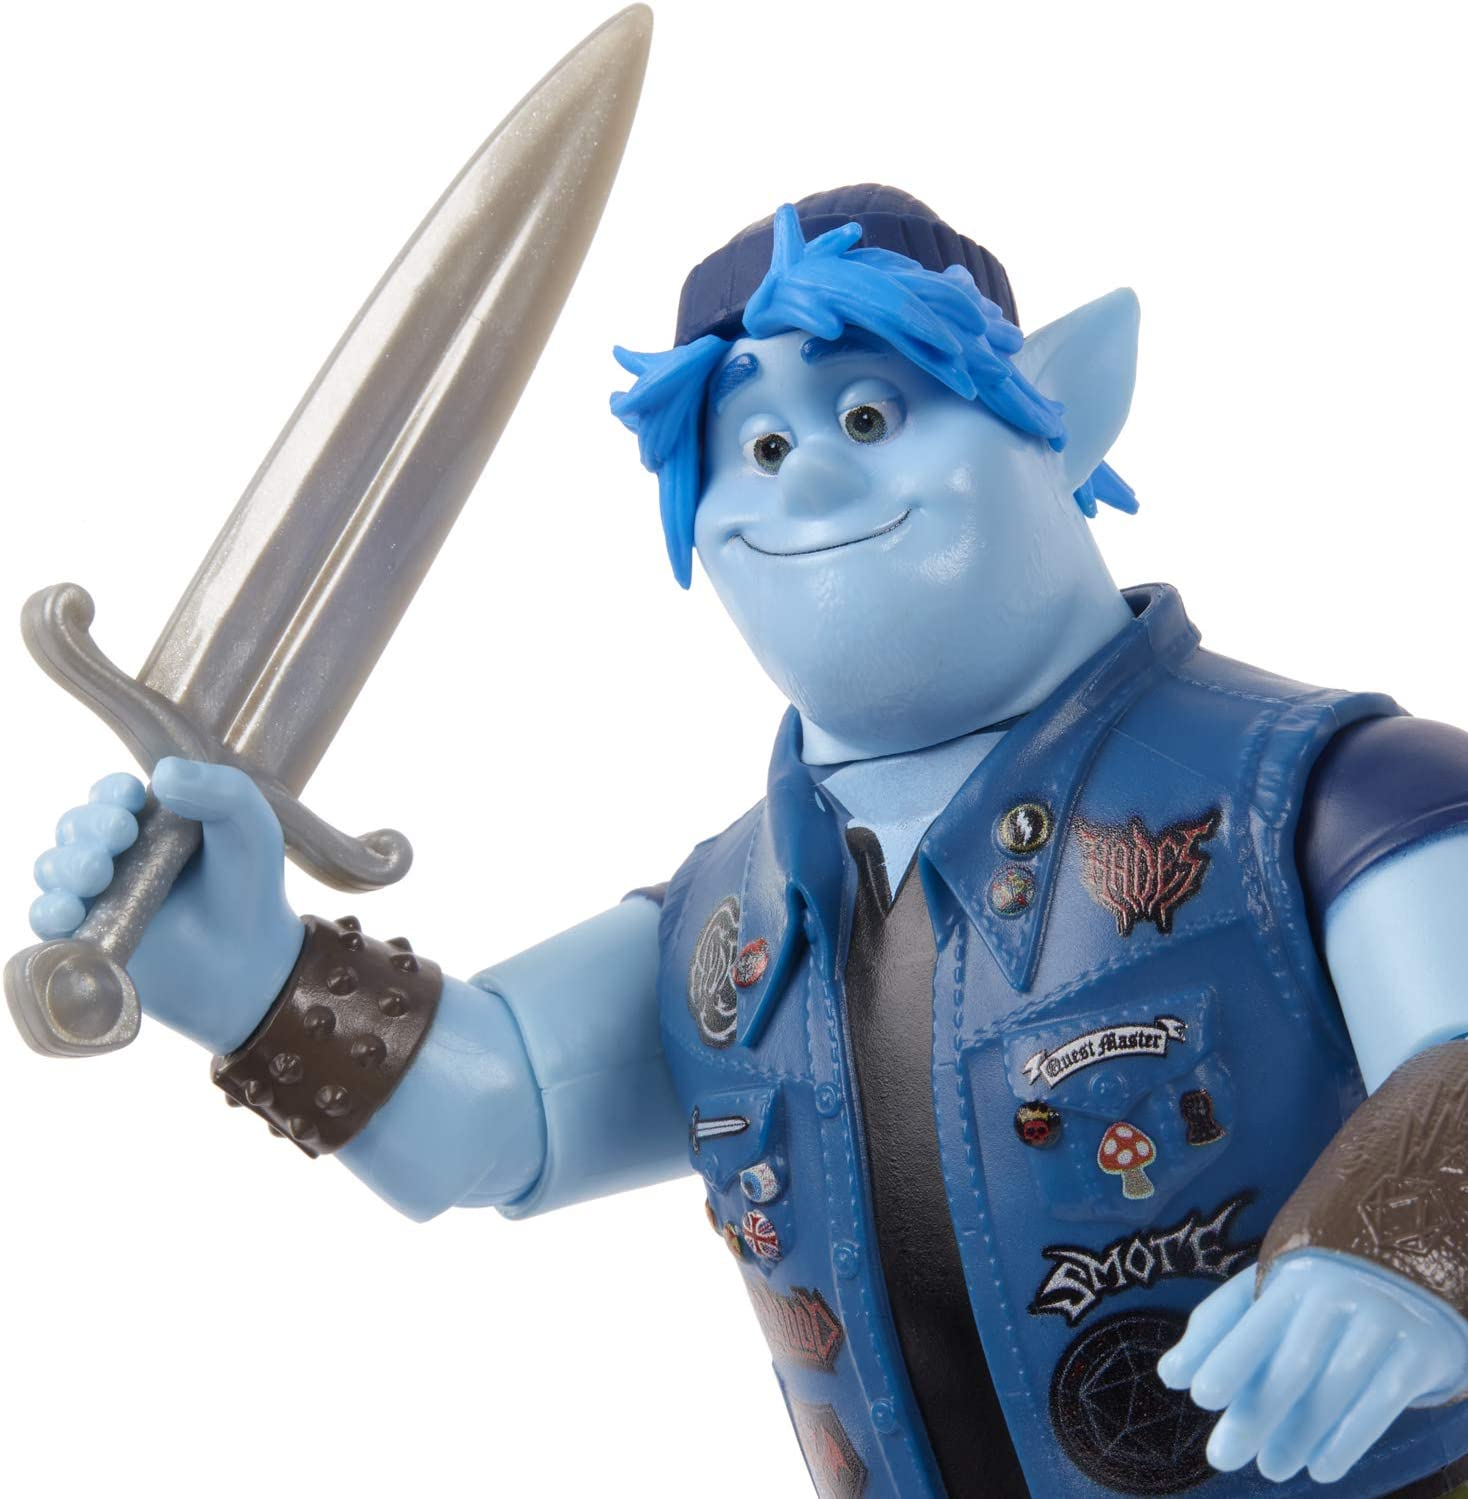 Mattel Disney Pixar Onward Barley Lightfoot Poseable Figure with Sword Age 3+